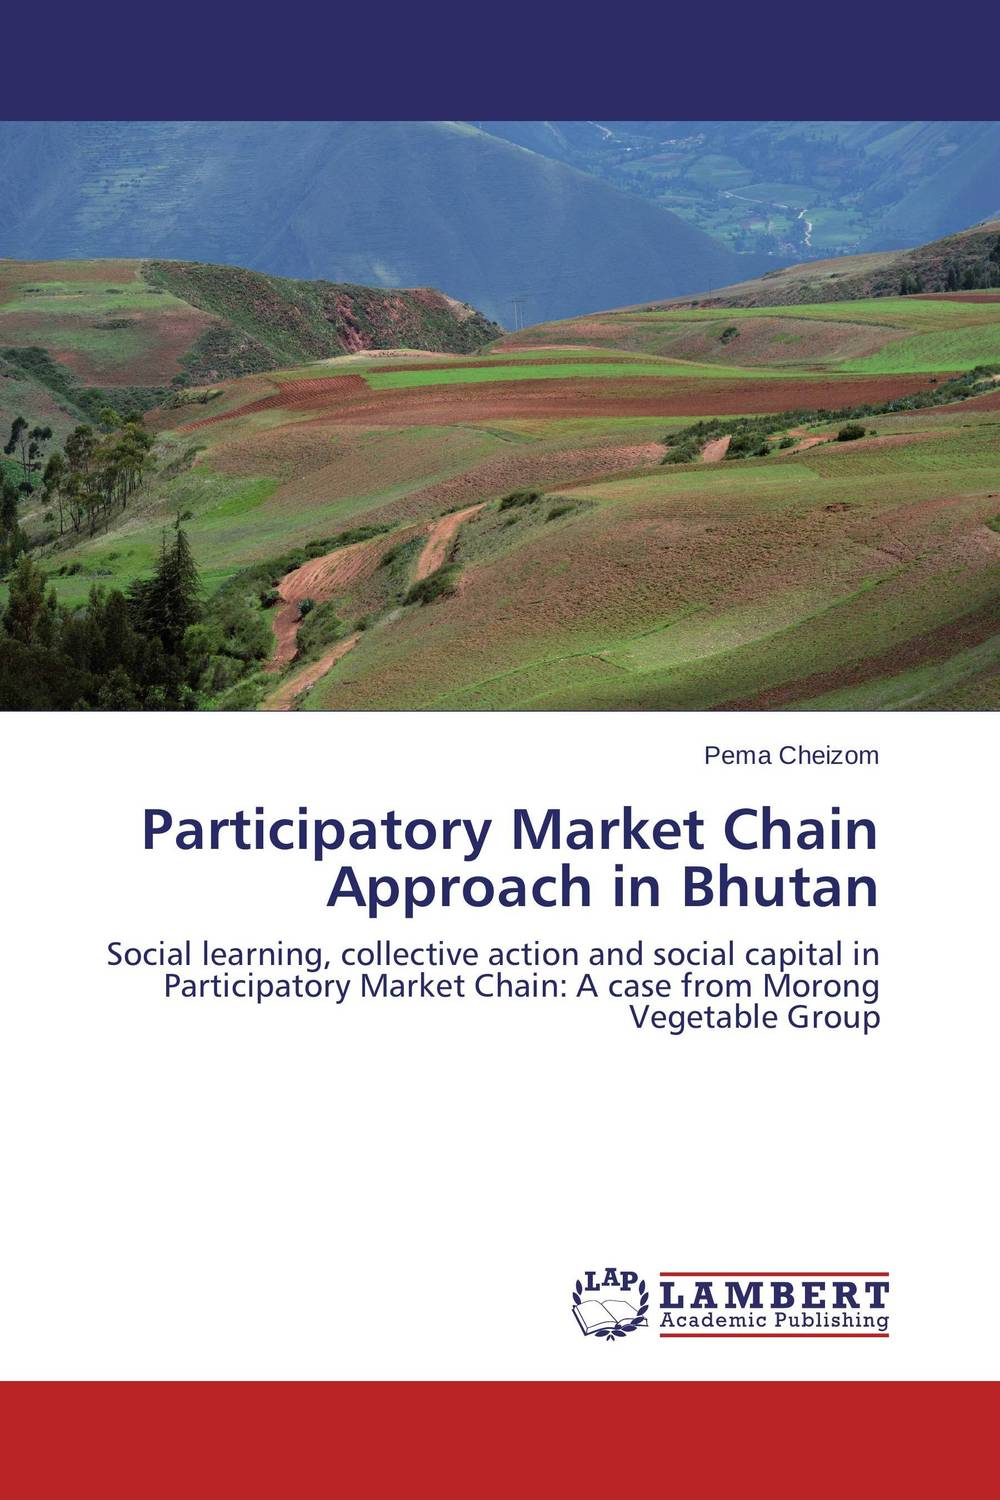 Participatory Market Chain Approach in Bhutan peter stone layered learning in multiagent systems – a winning approach to robotic soccer